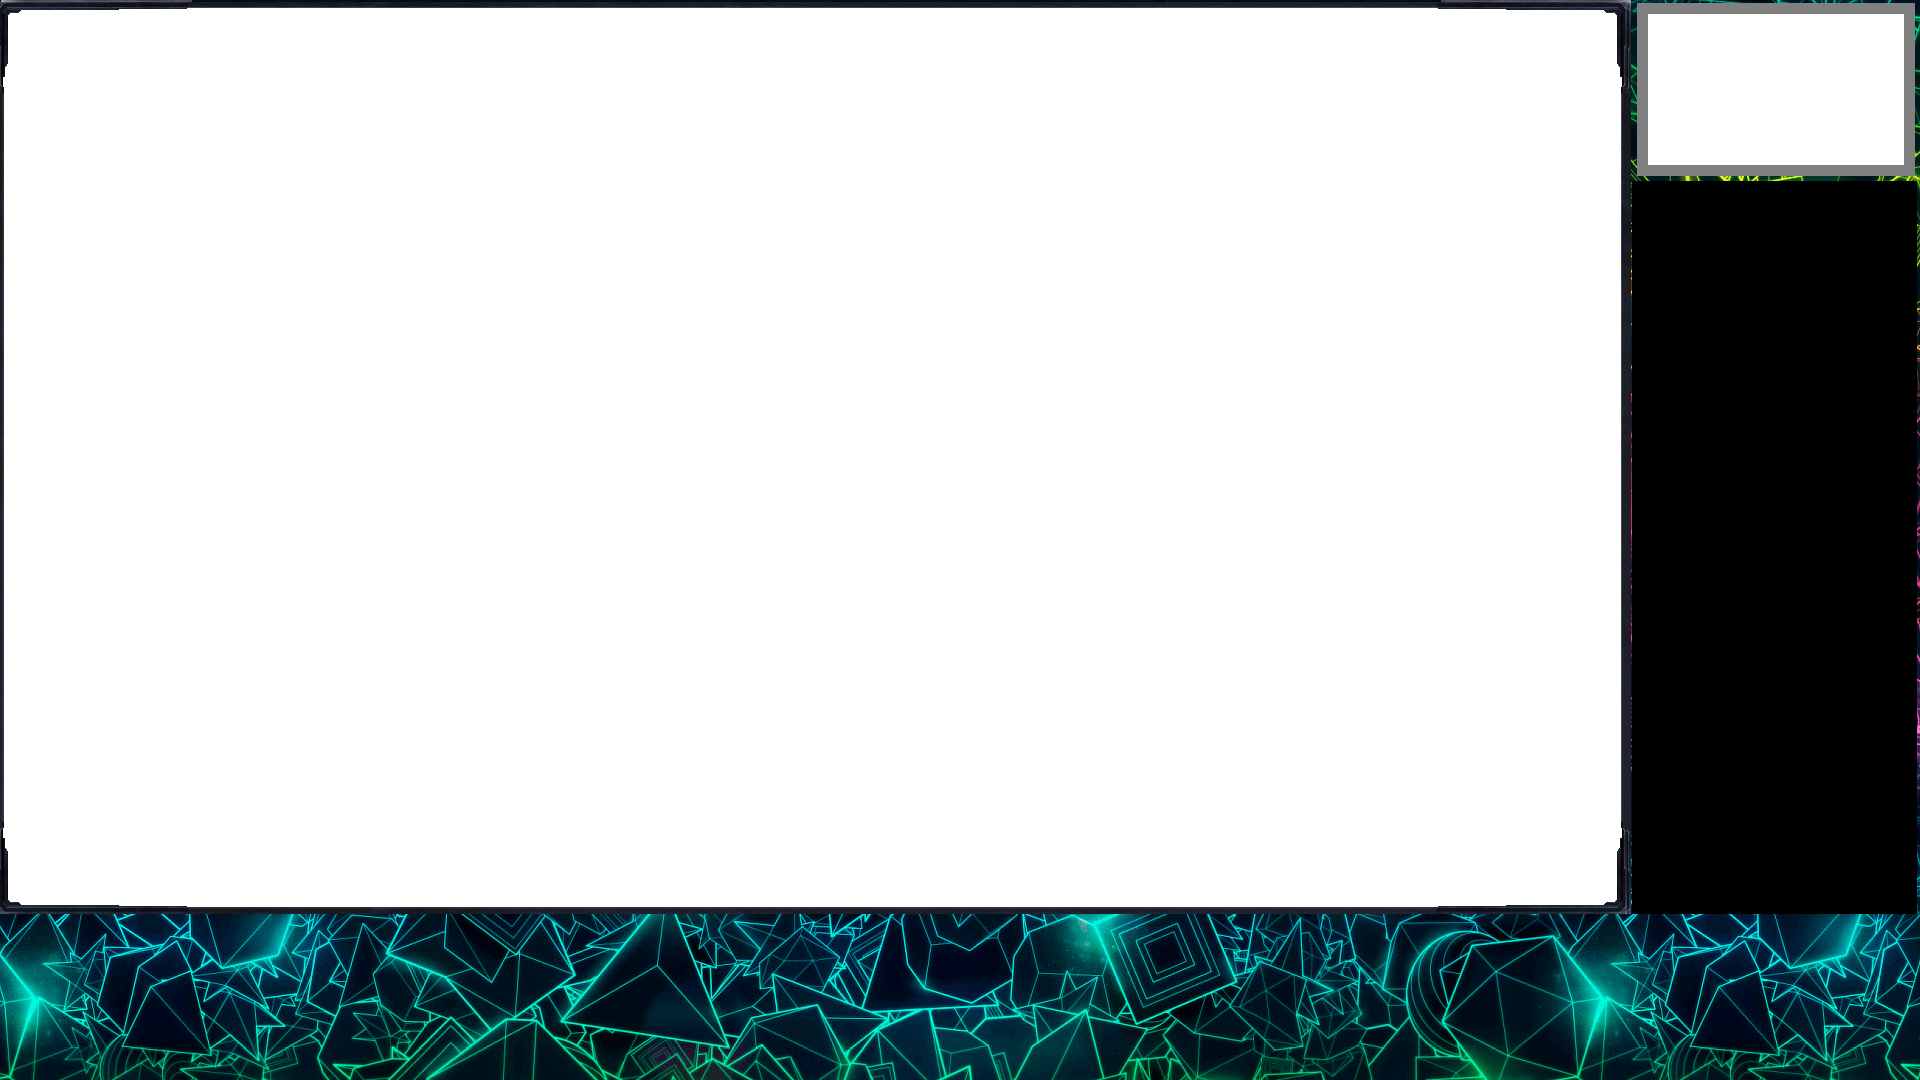 Simple Webcam Overlay Transparent Clipart - Large Size Png ...